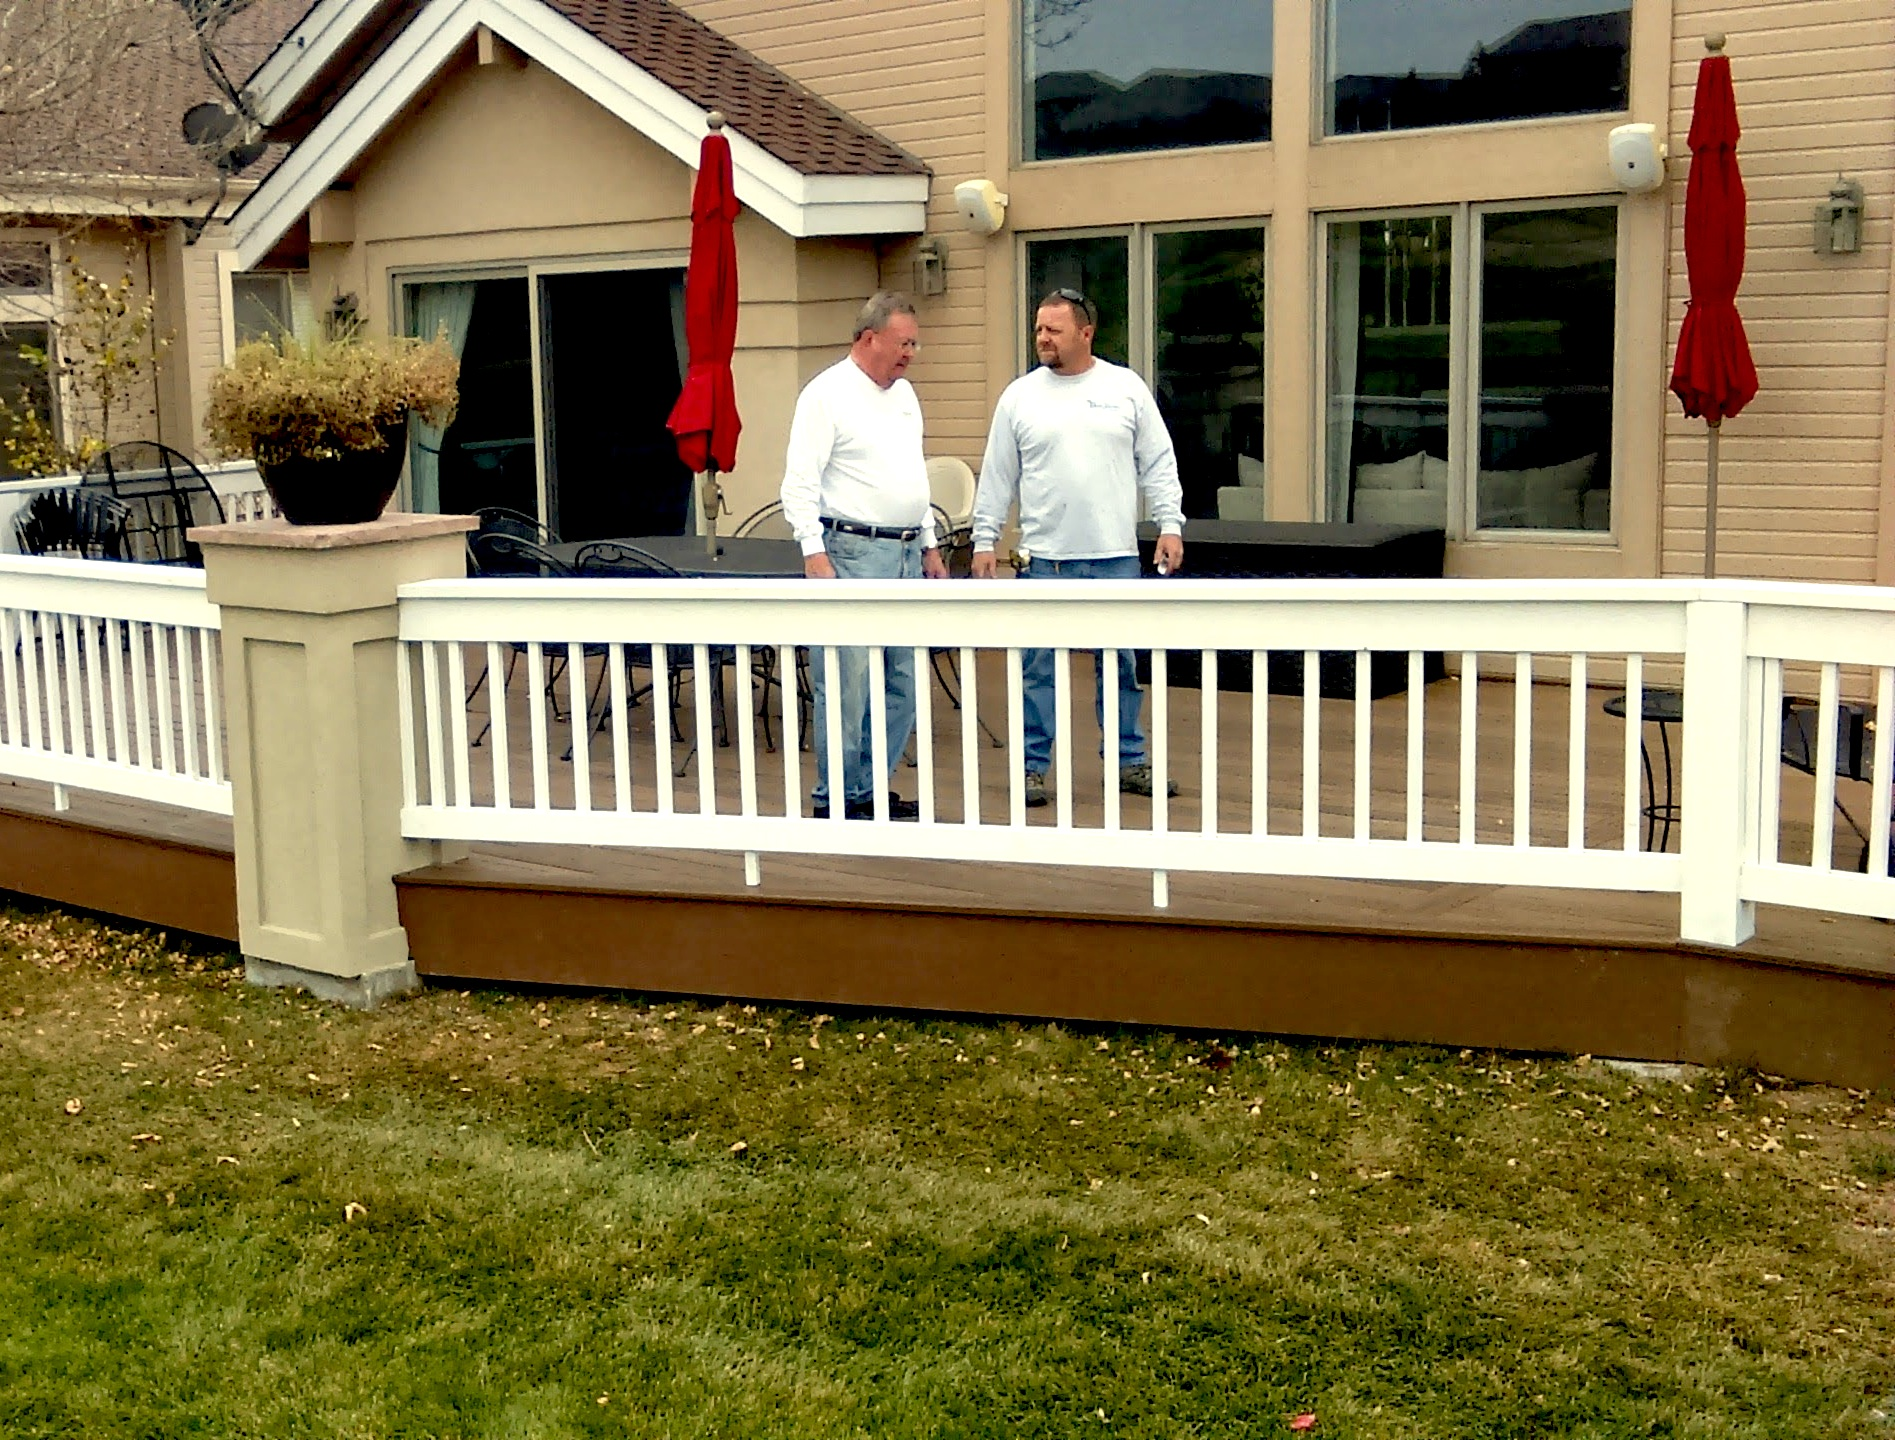 Deck Builder Modell : About « the deck builder of colorado